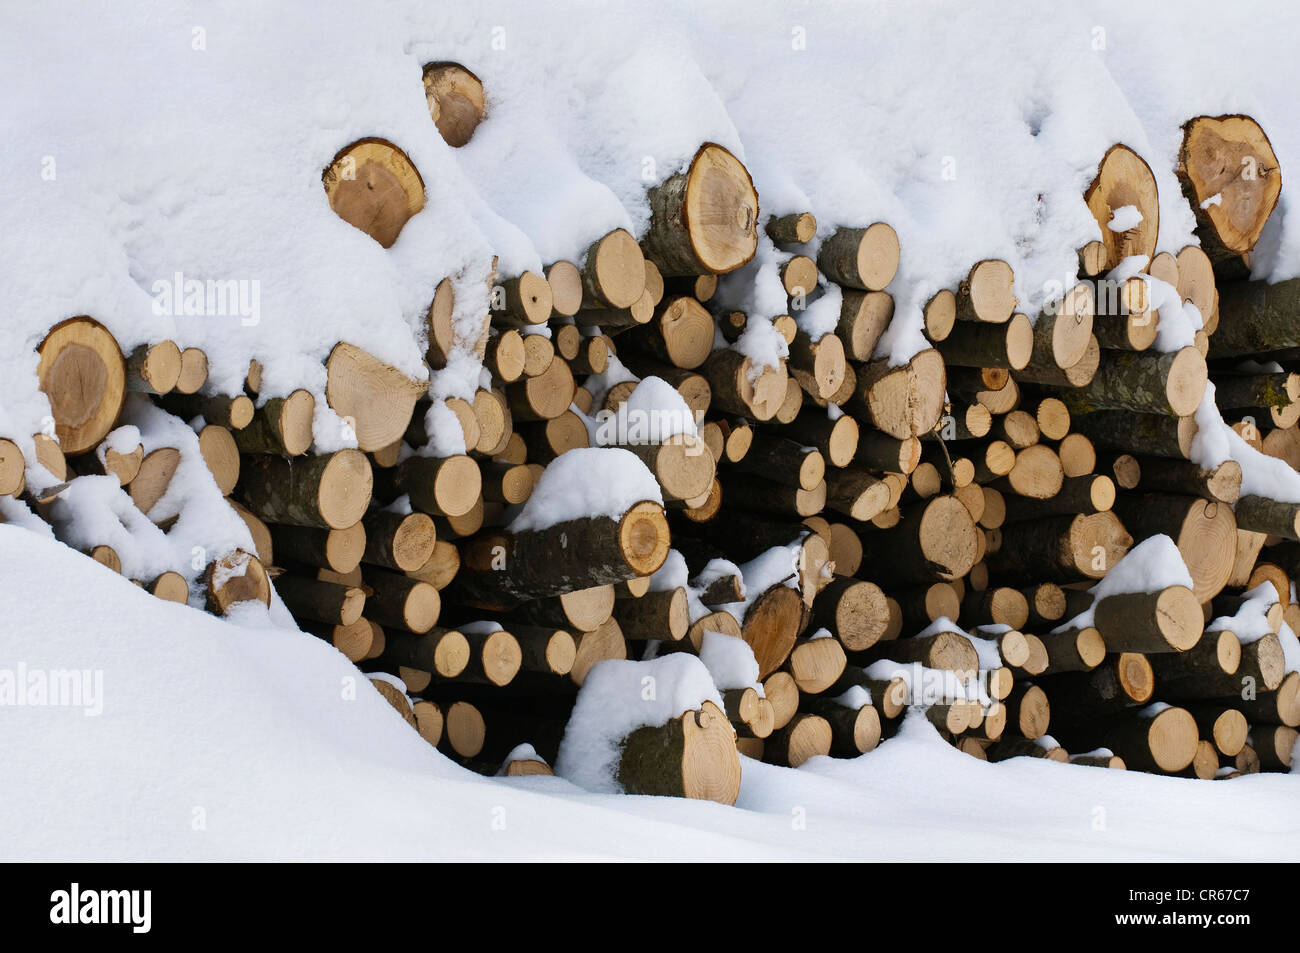 Stacked firewood, beech wood, in the snow - Stock Image